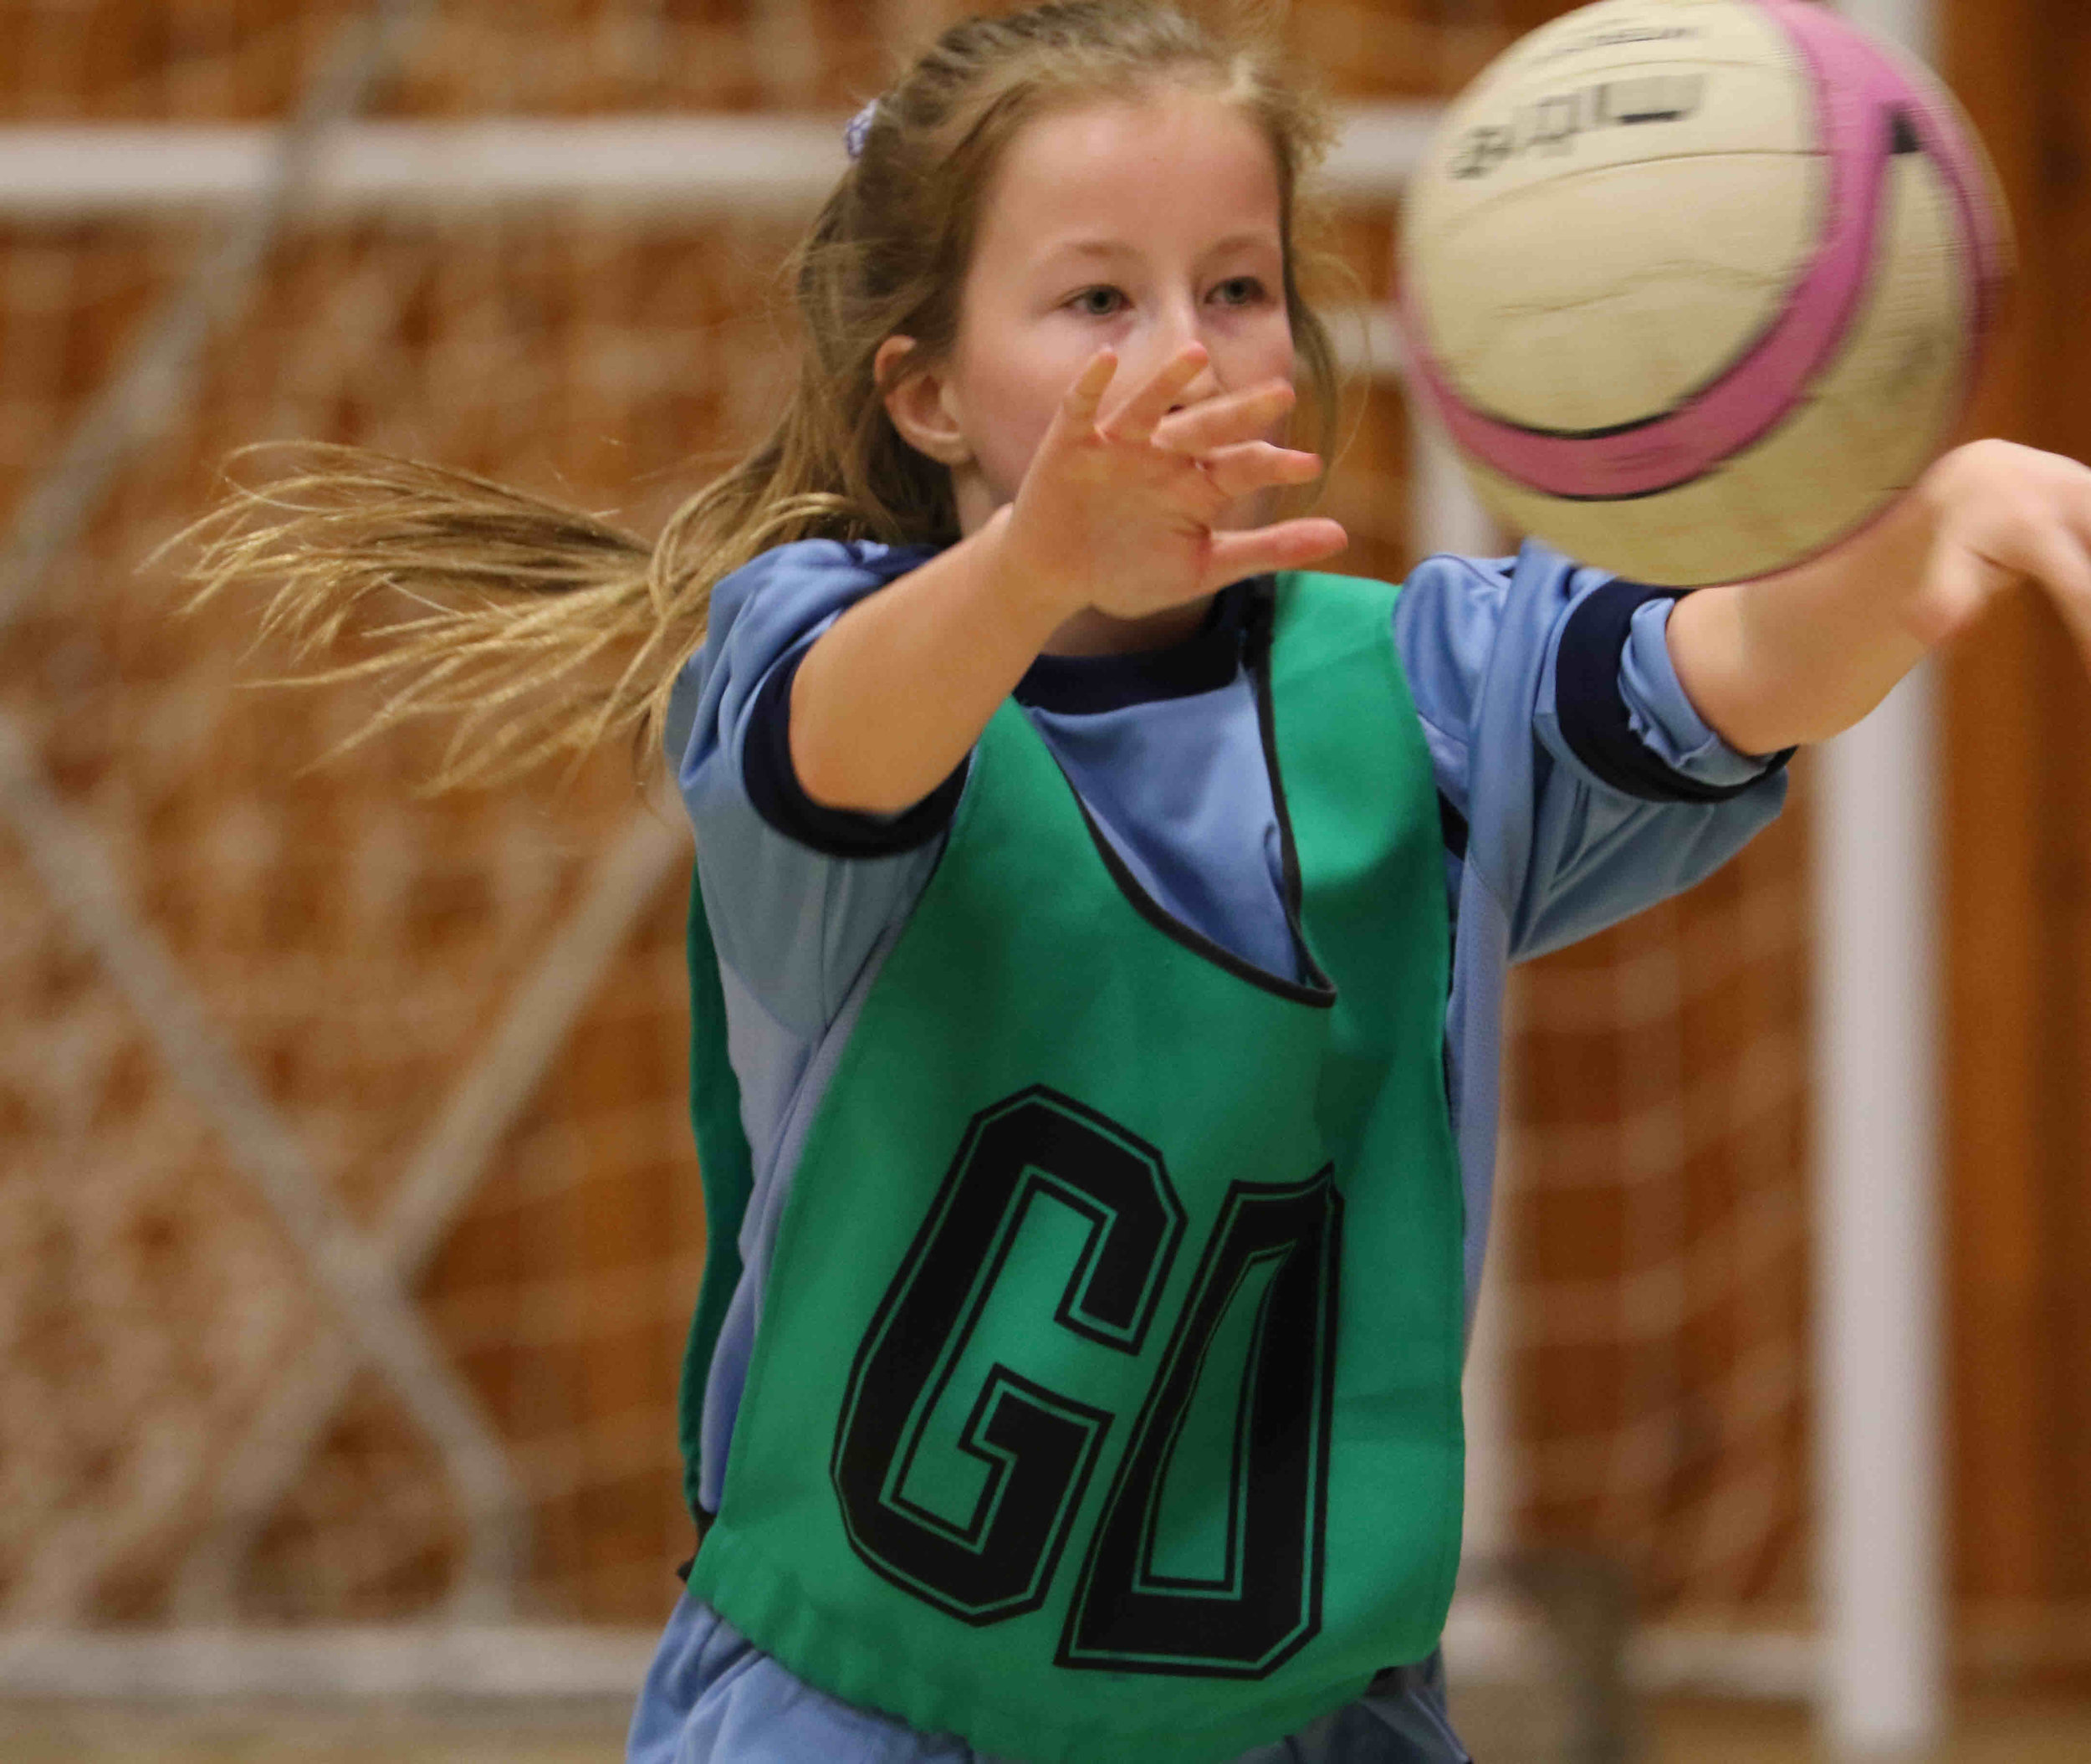 KS2 Netball @ Crofton Academy   With teams from Walton, Crofton Juniors, Shay Lane and Sharlston  Pictures are available @  Year 5&6 Netball